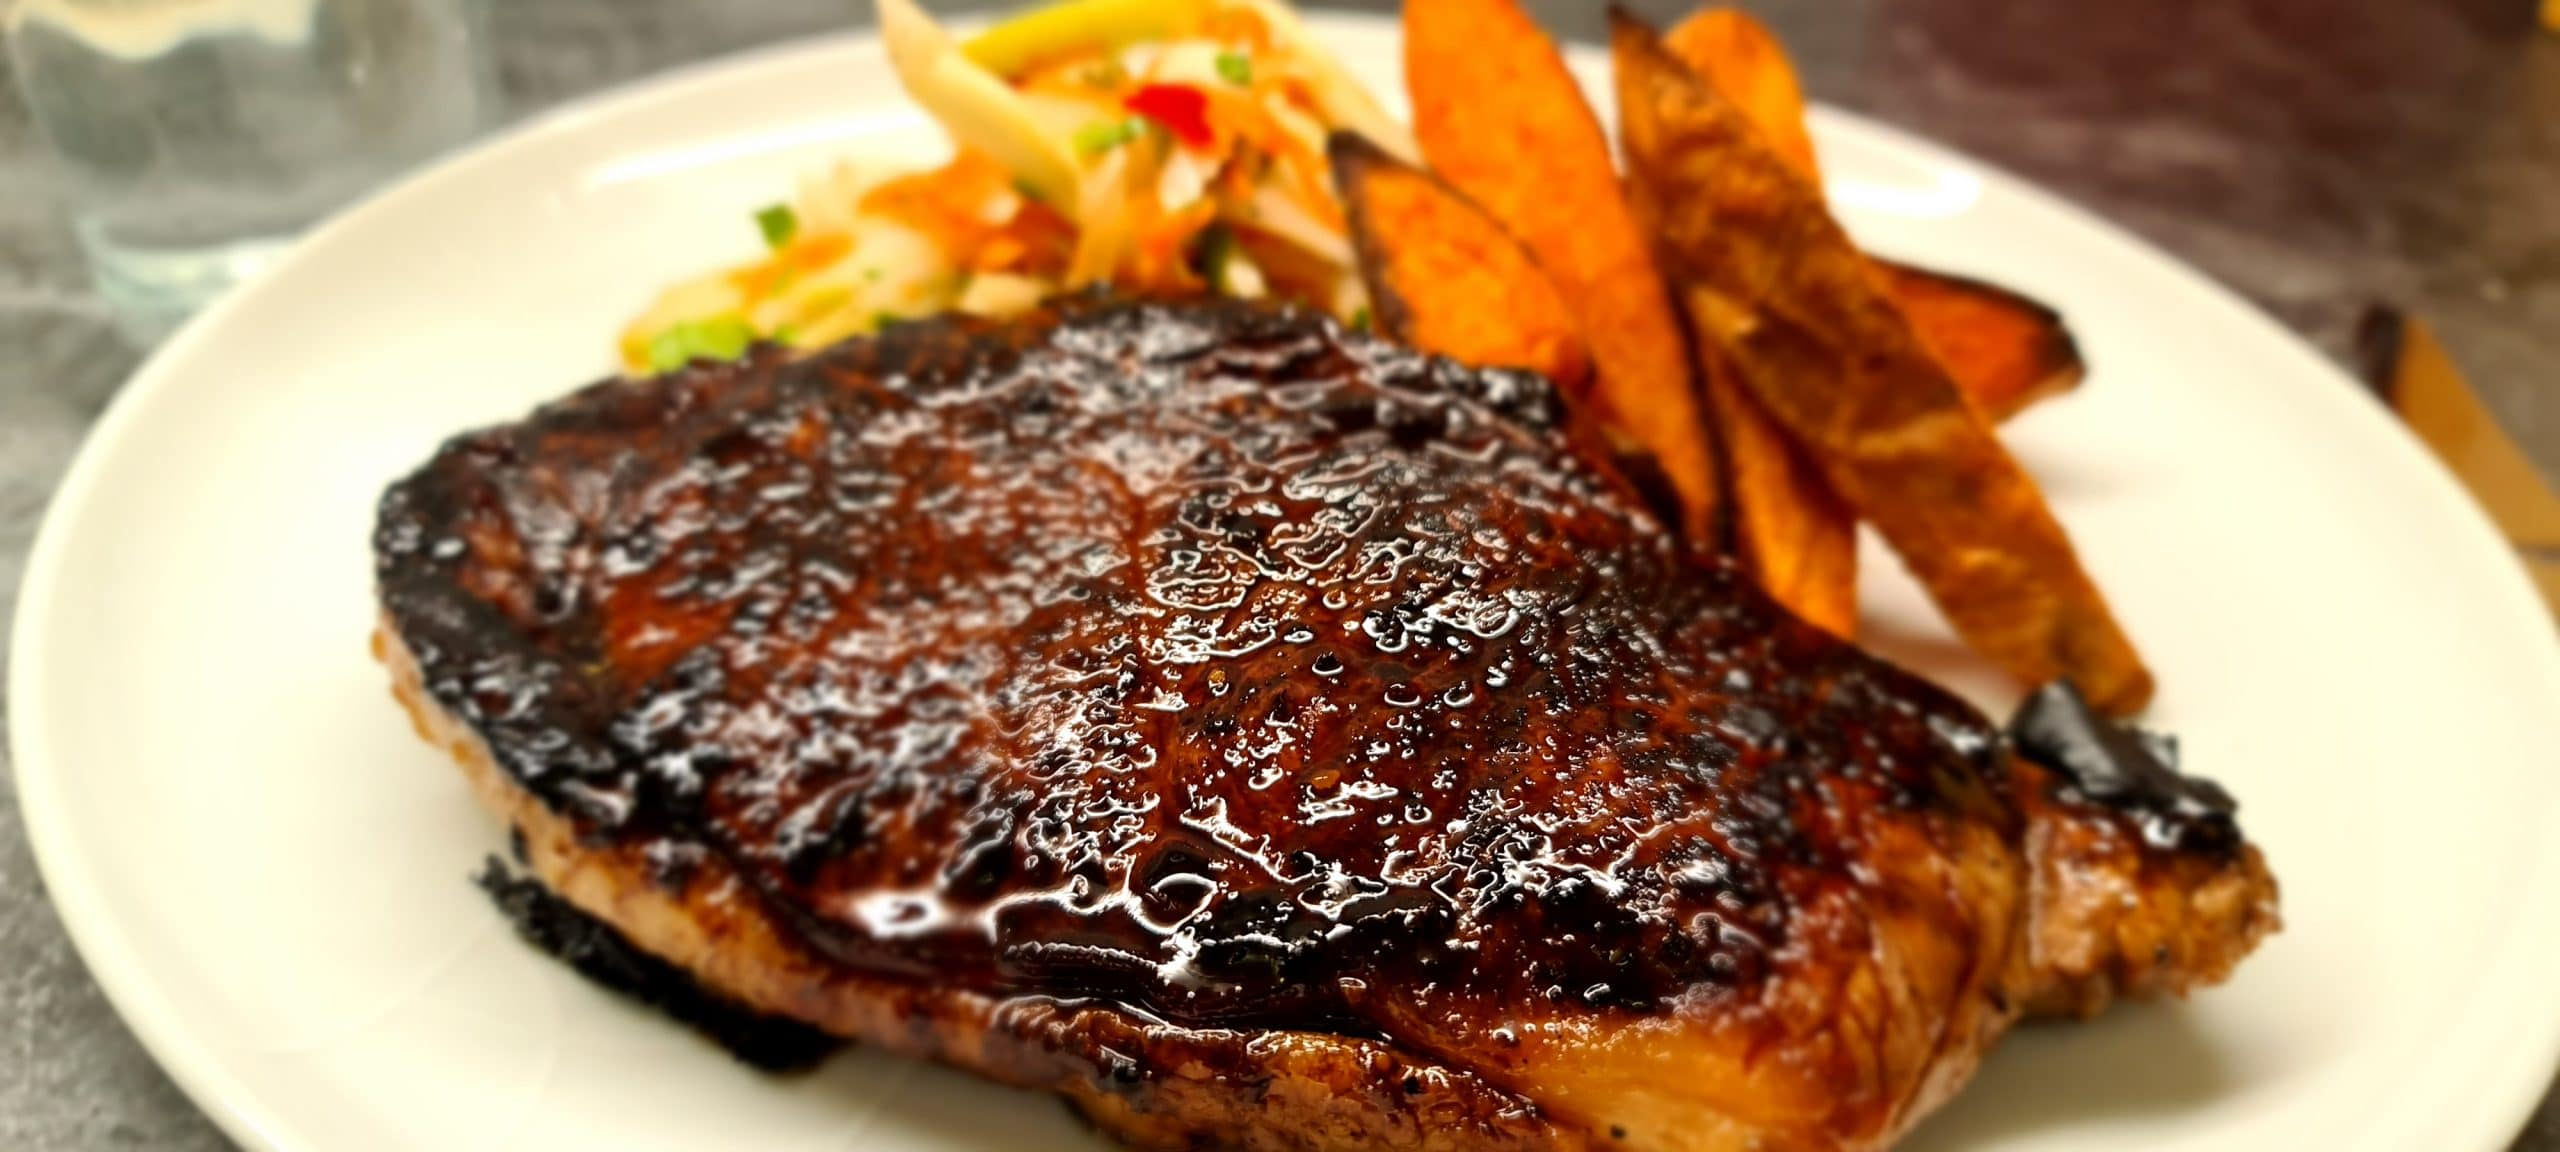 You are currently viewing Teriyaki Steak with Fennel Slaw and Sweet Potato Wedges